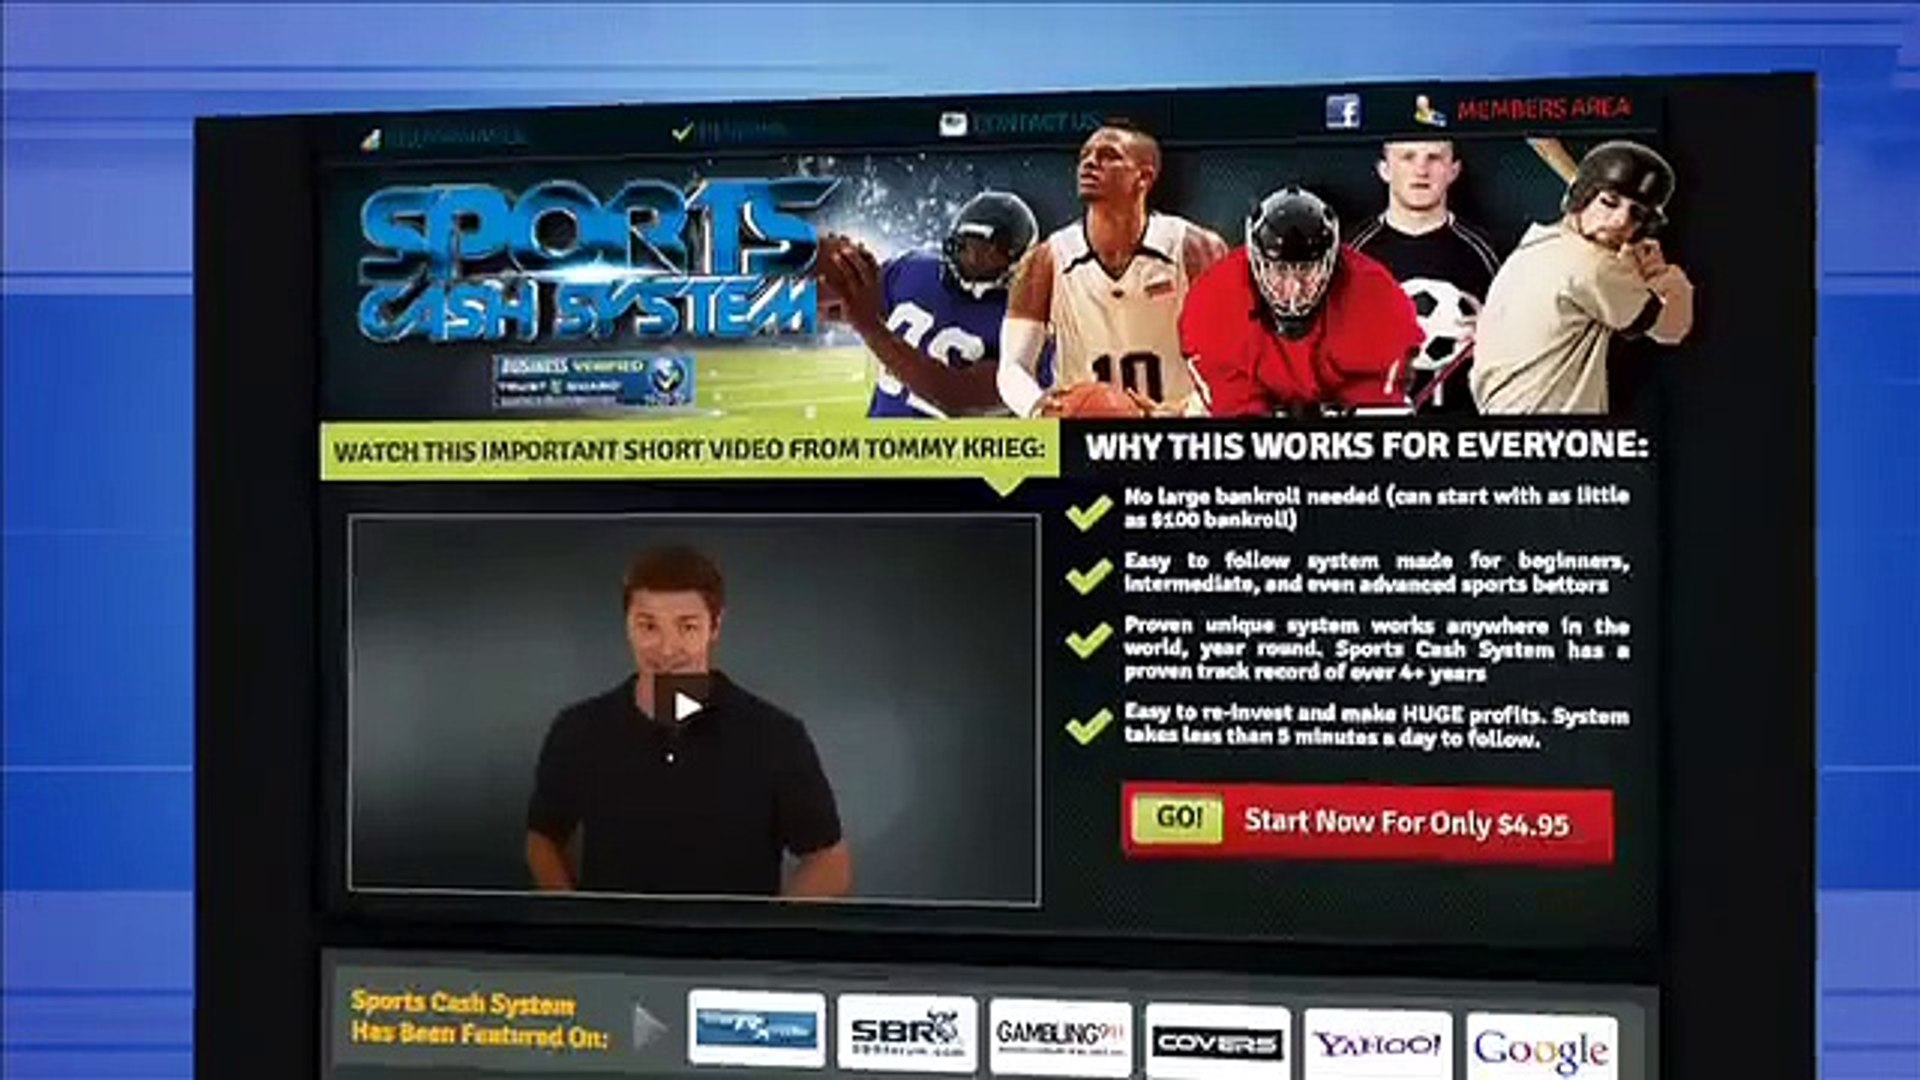 Sports Cash System - Online Sports Betting Online - Watch Sports and Bet Online